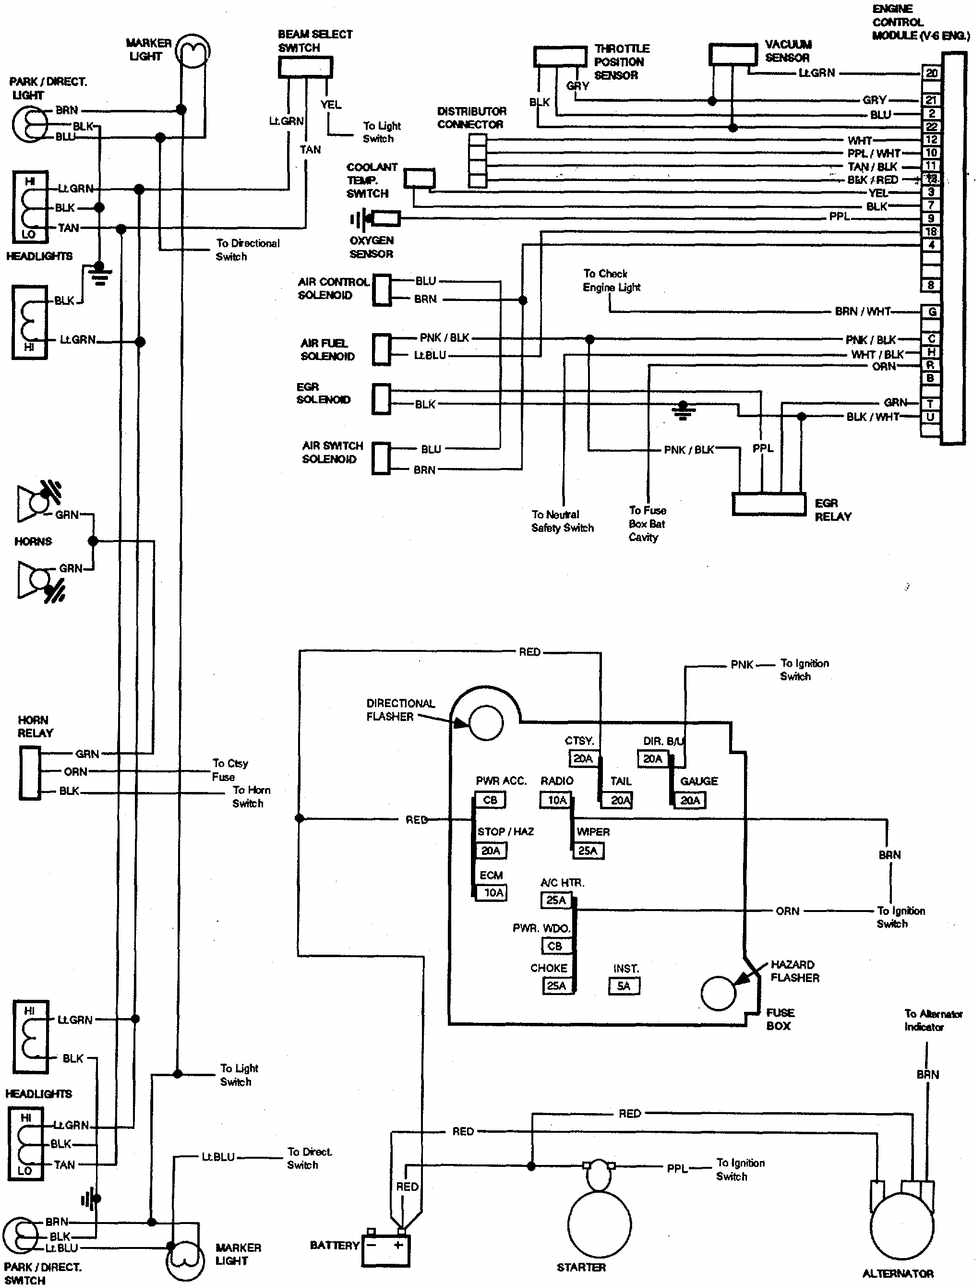 1987 mustang wiring diagram   27 wiring diagram images